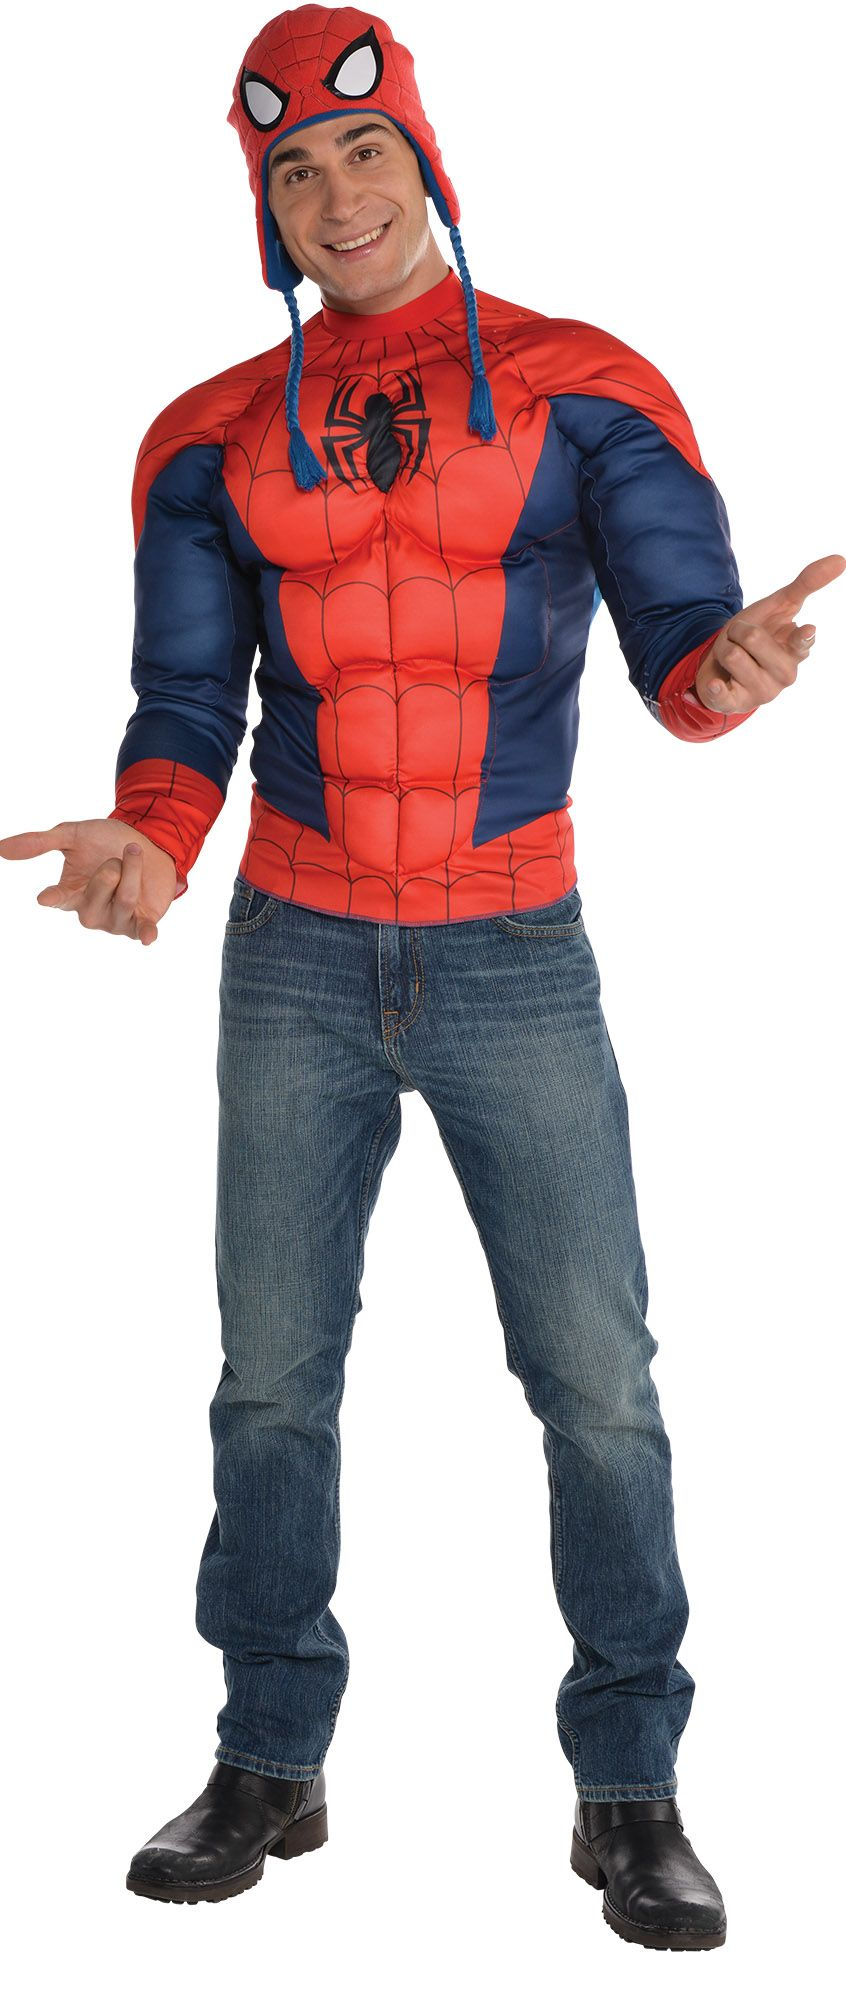 Create Your Look - Male Spiderman